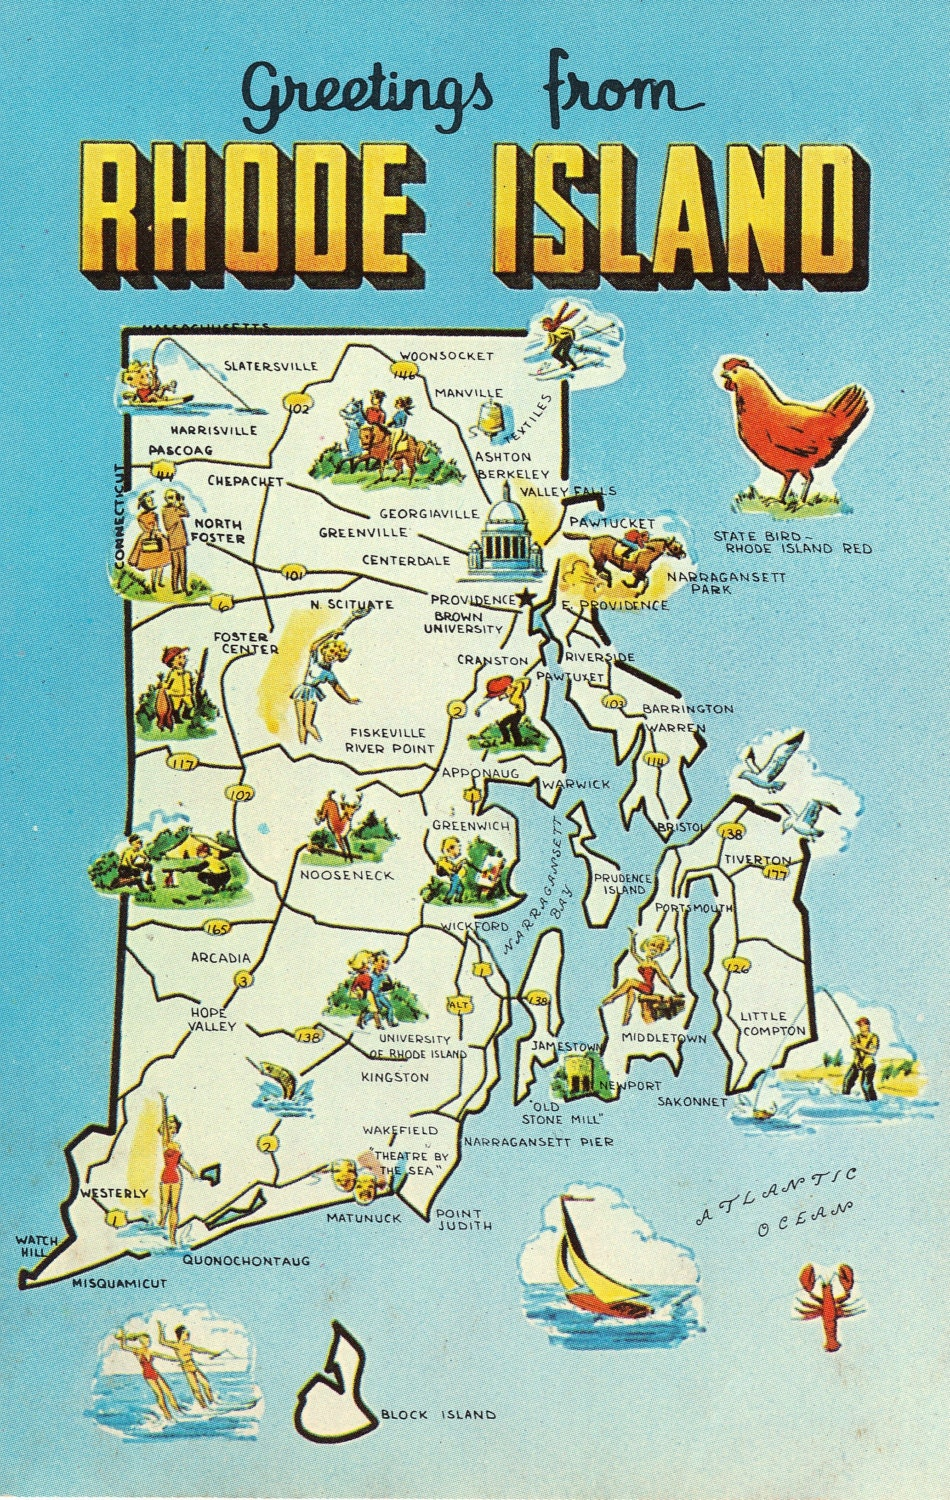 Rhode Island State Map Vintage Postcard Greetings From